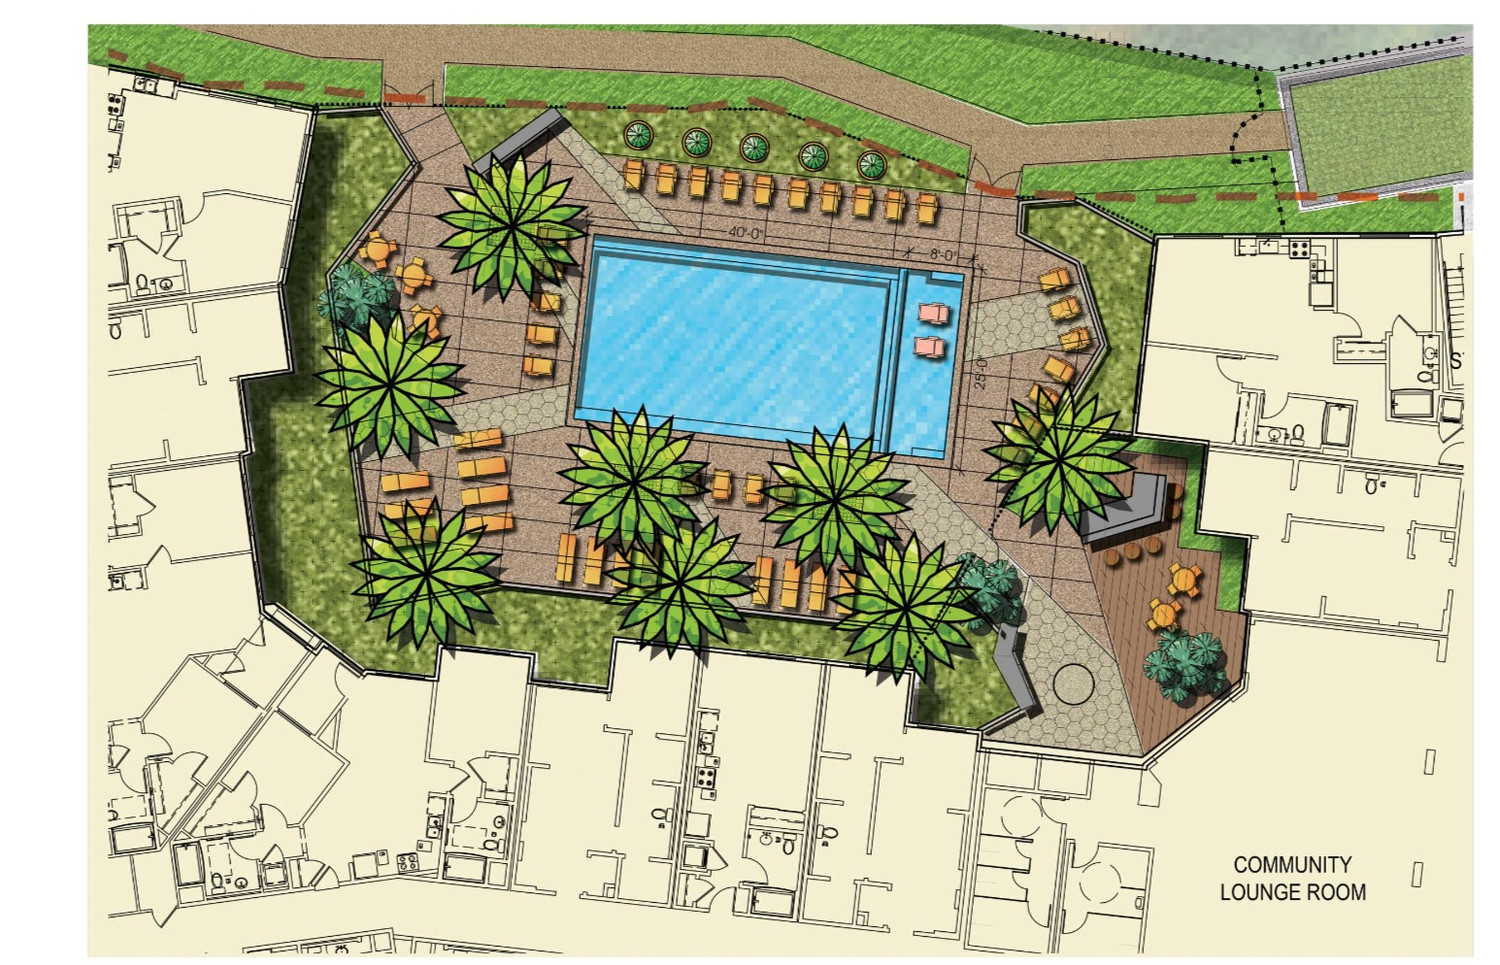 North County Plaza Pool Court Enlargement